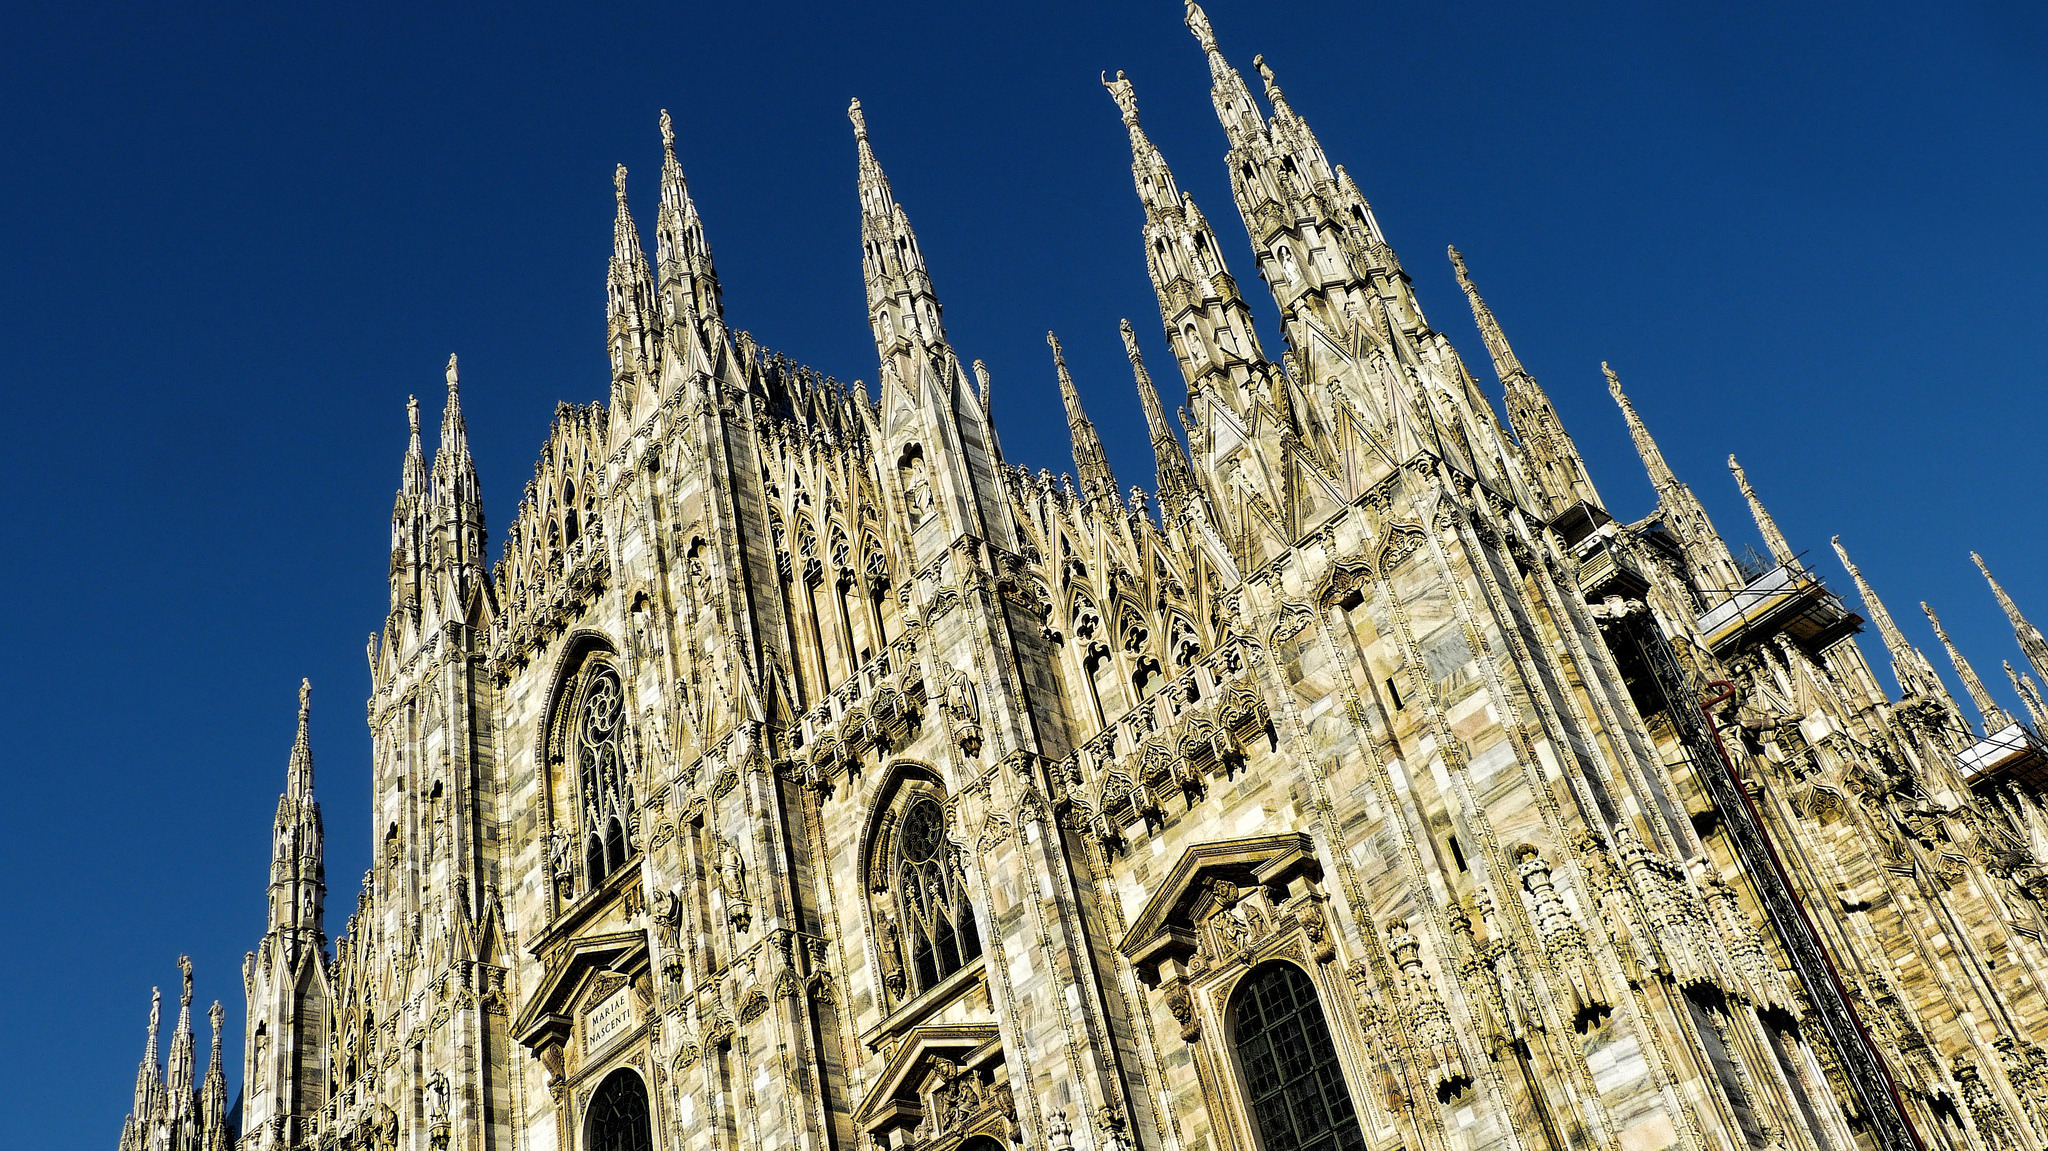 10 must-see attractions in Milan